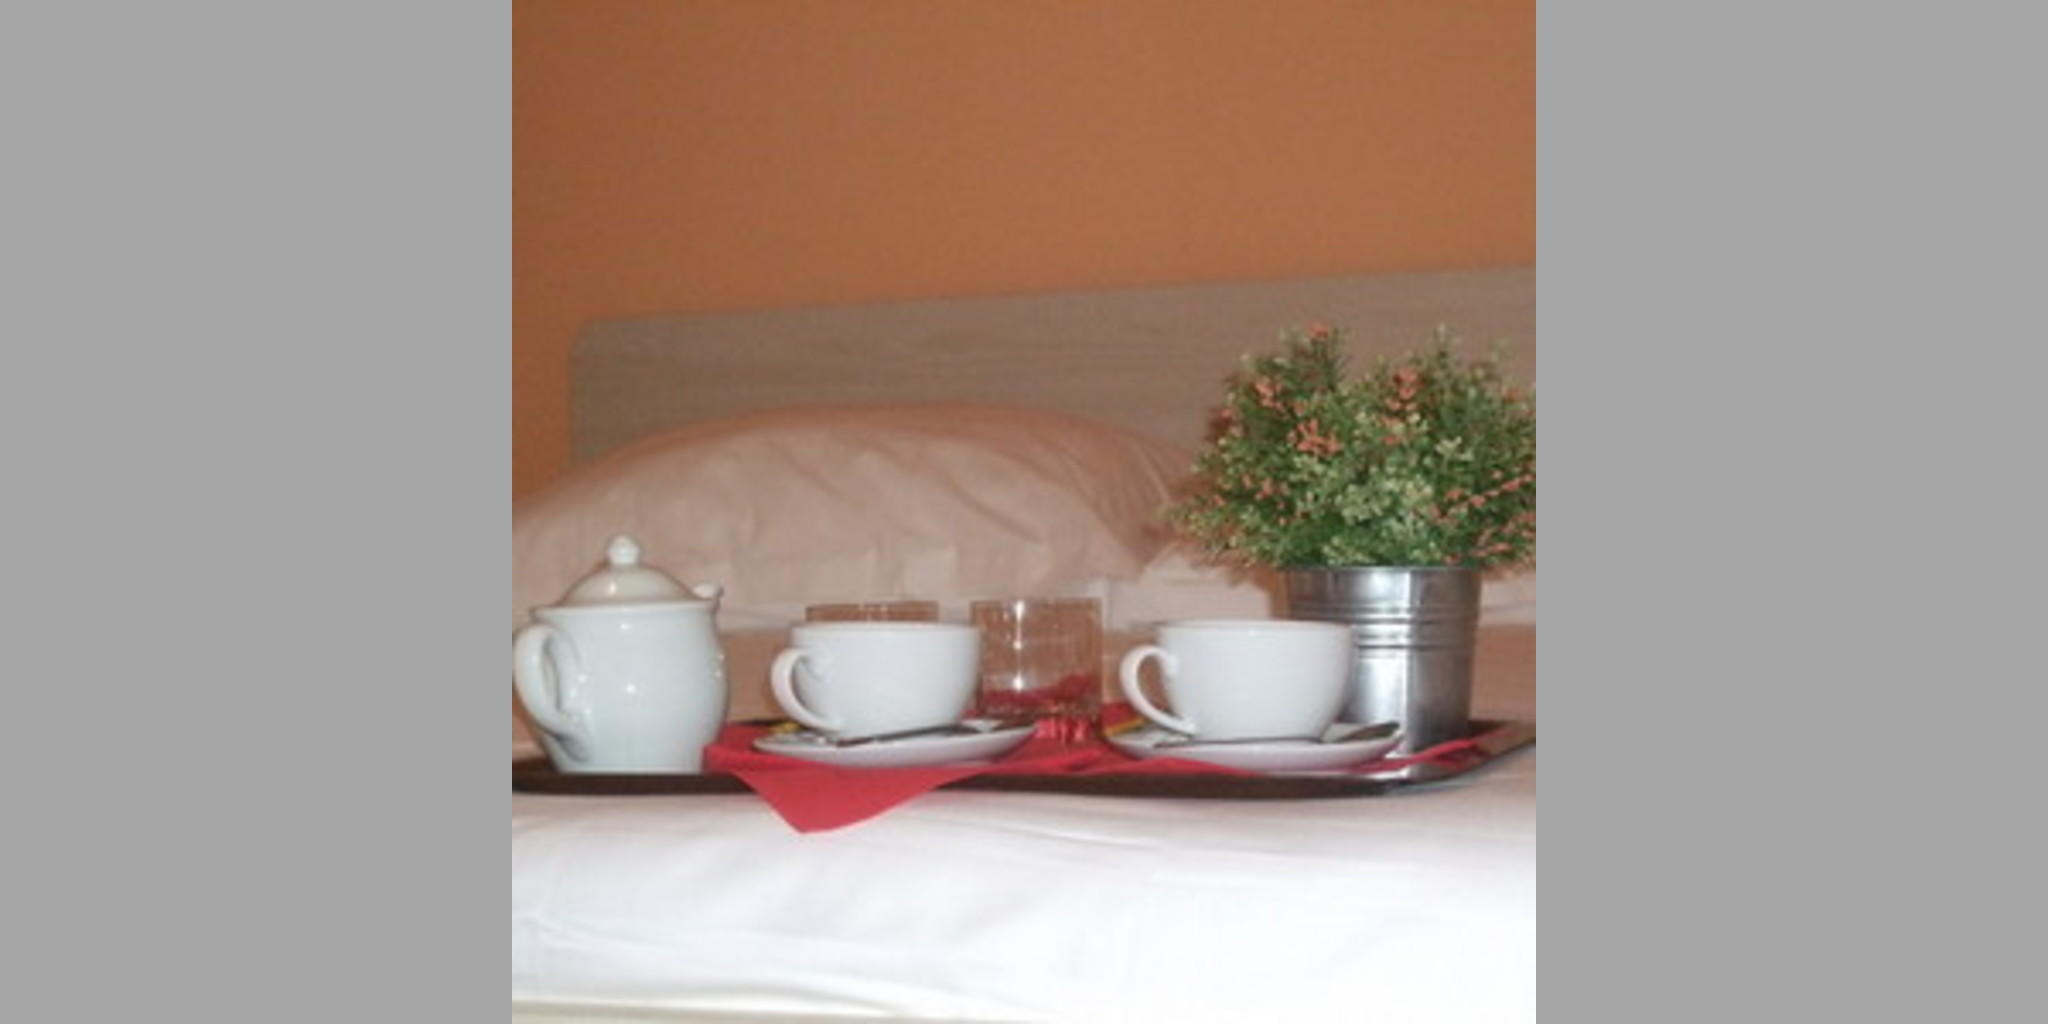 Bed & Breakfast Incisa In Val D'Arno - Incisa Val D'arno